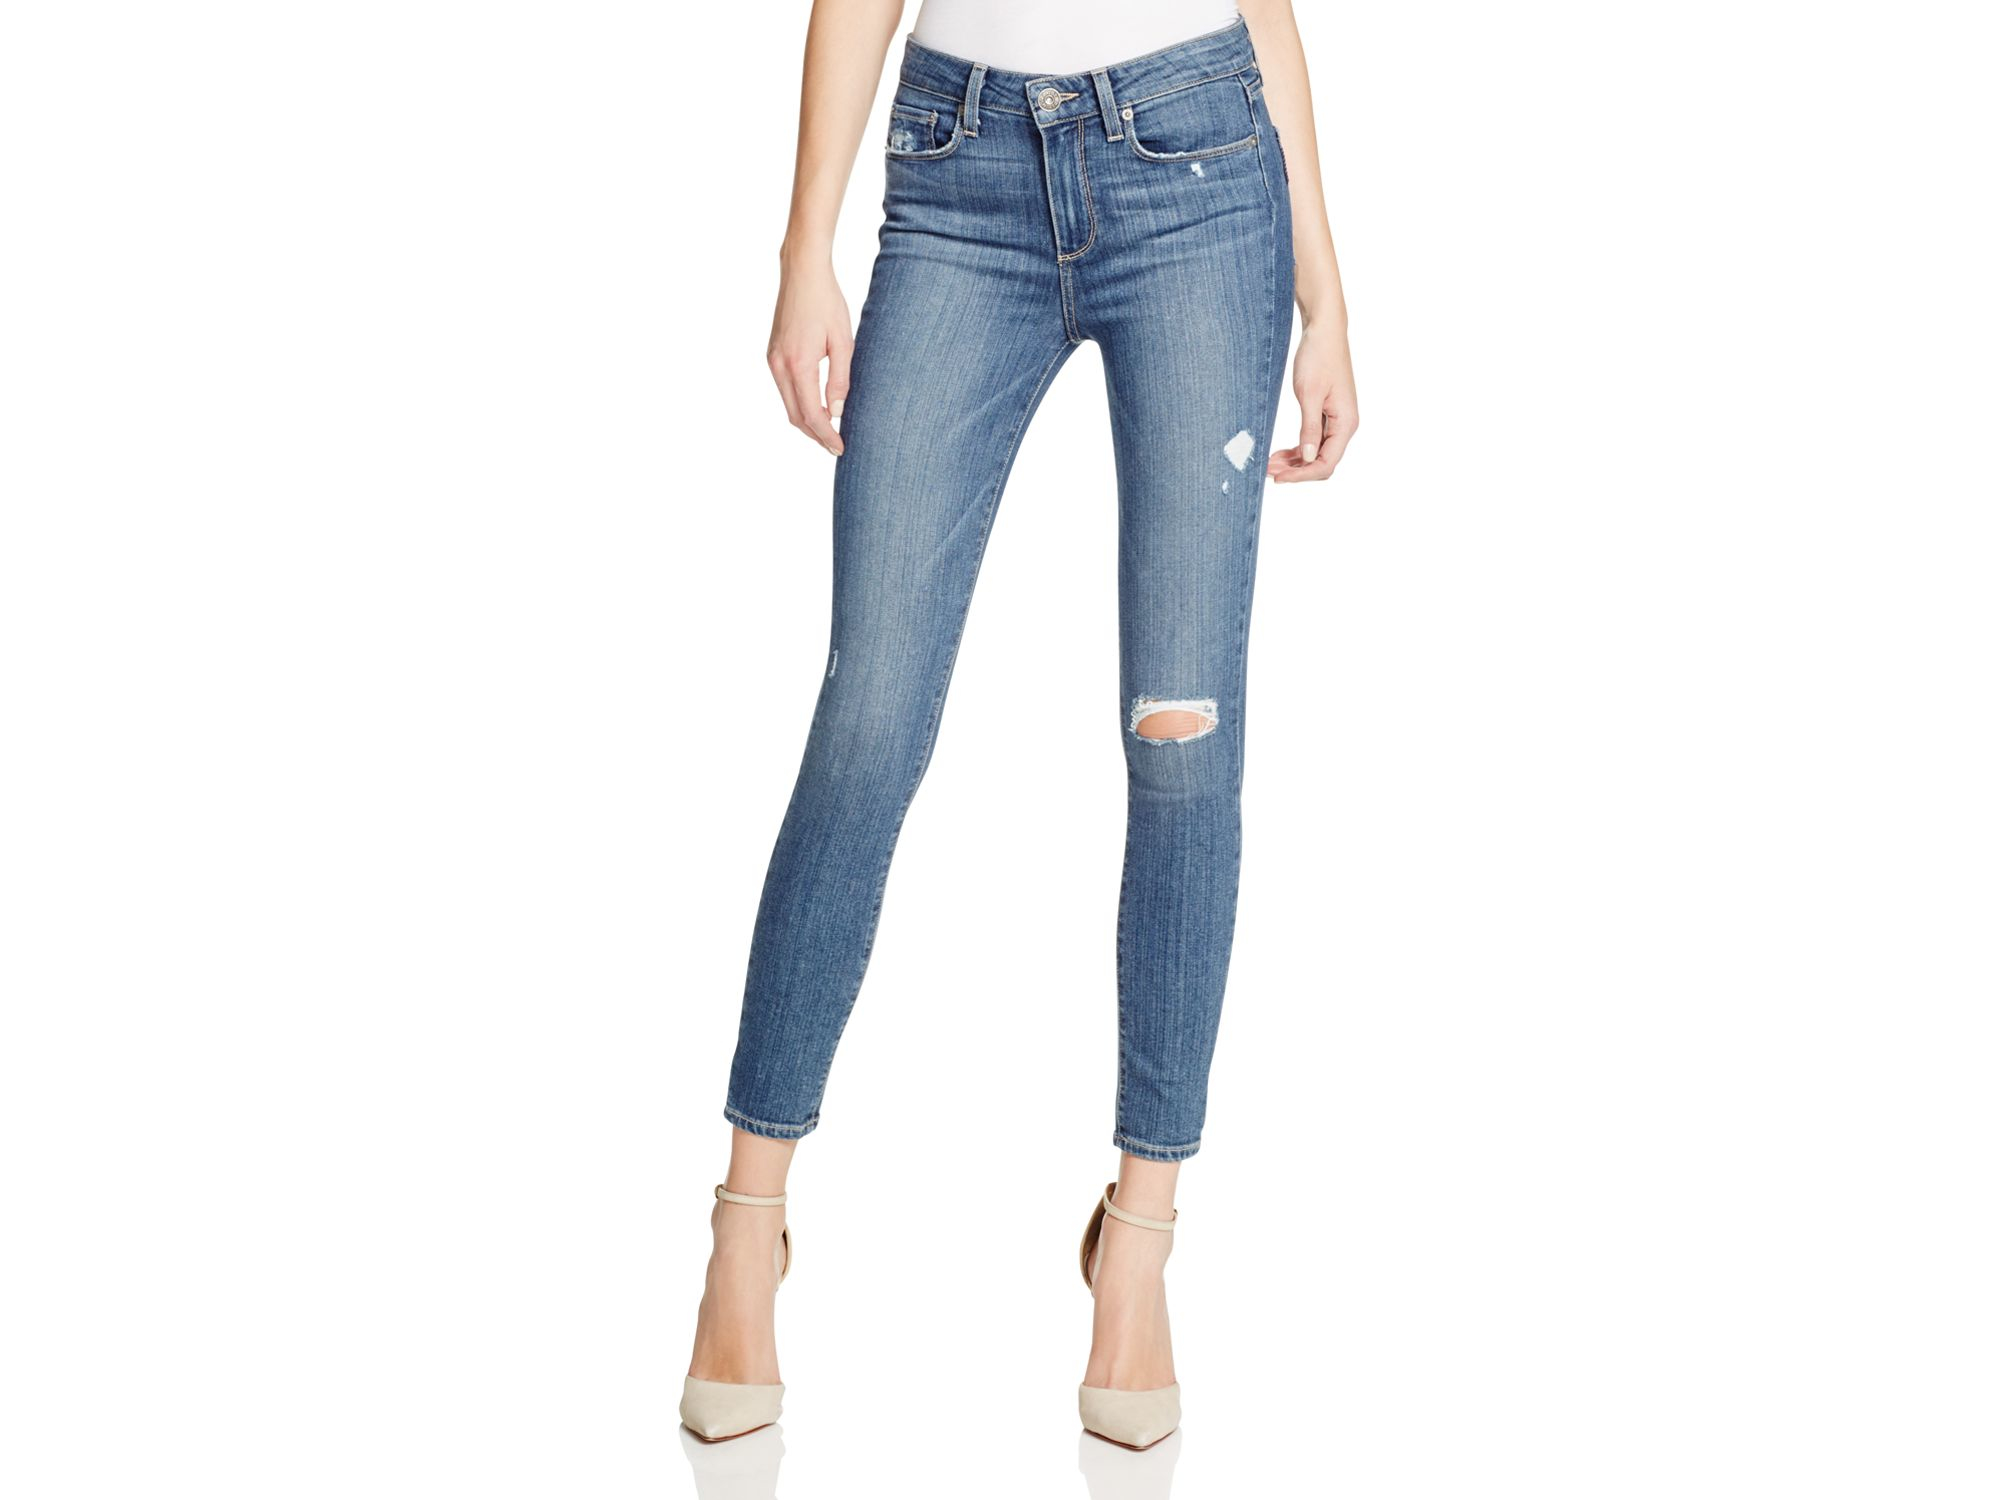 30ba5a354e2 Lyst - PAIGE Denim Hoxton Ankle Skinny Jeans In Silas Destroy in Blue